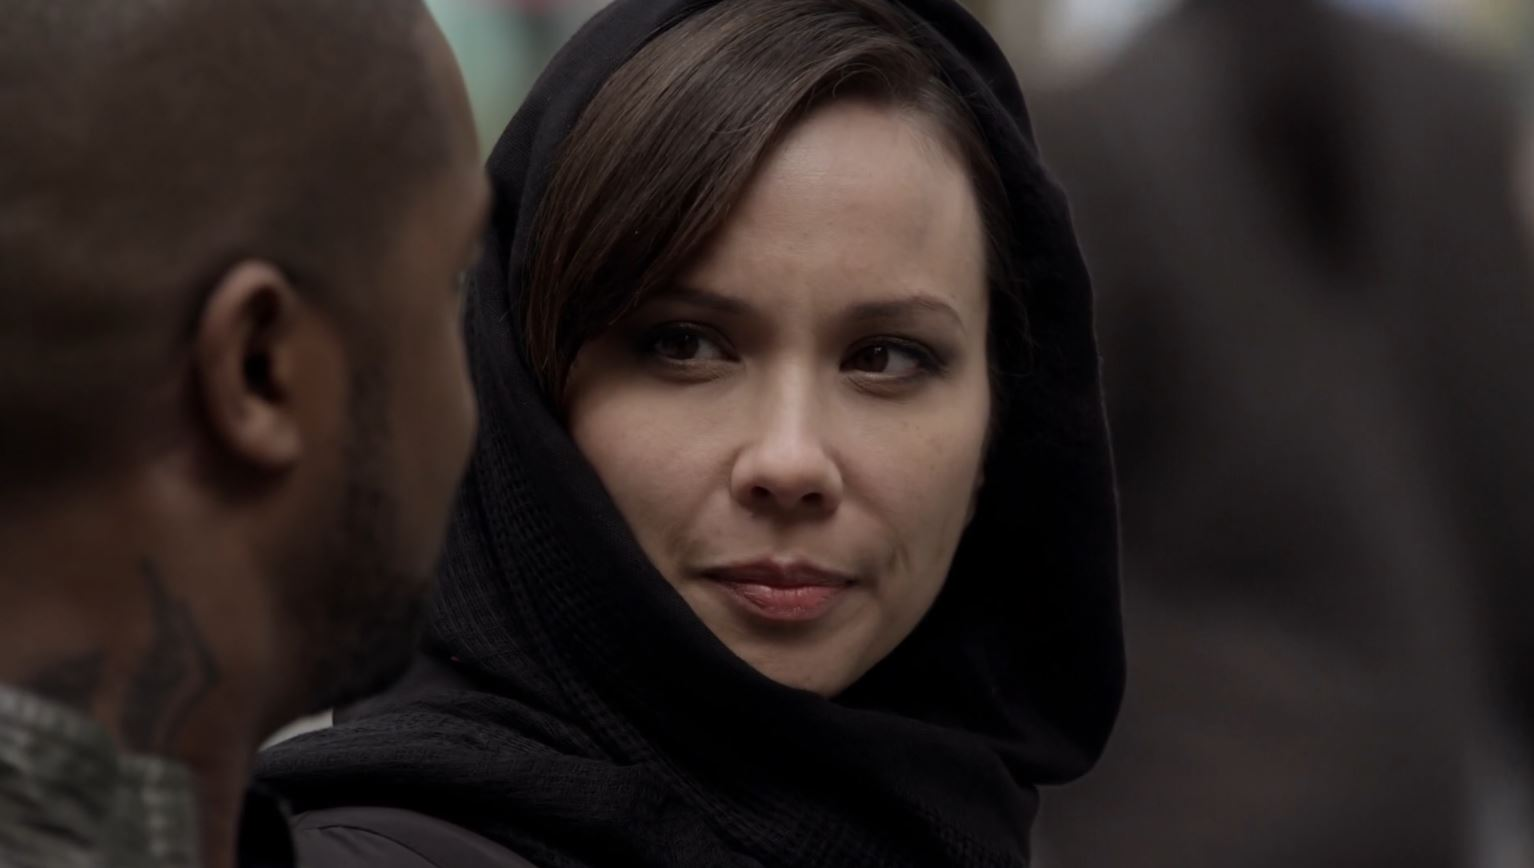 Continuum Season 3 Finale Last Minute Review - Lexa Doig as Sonya Valentine